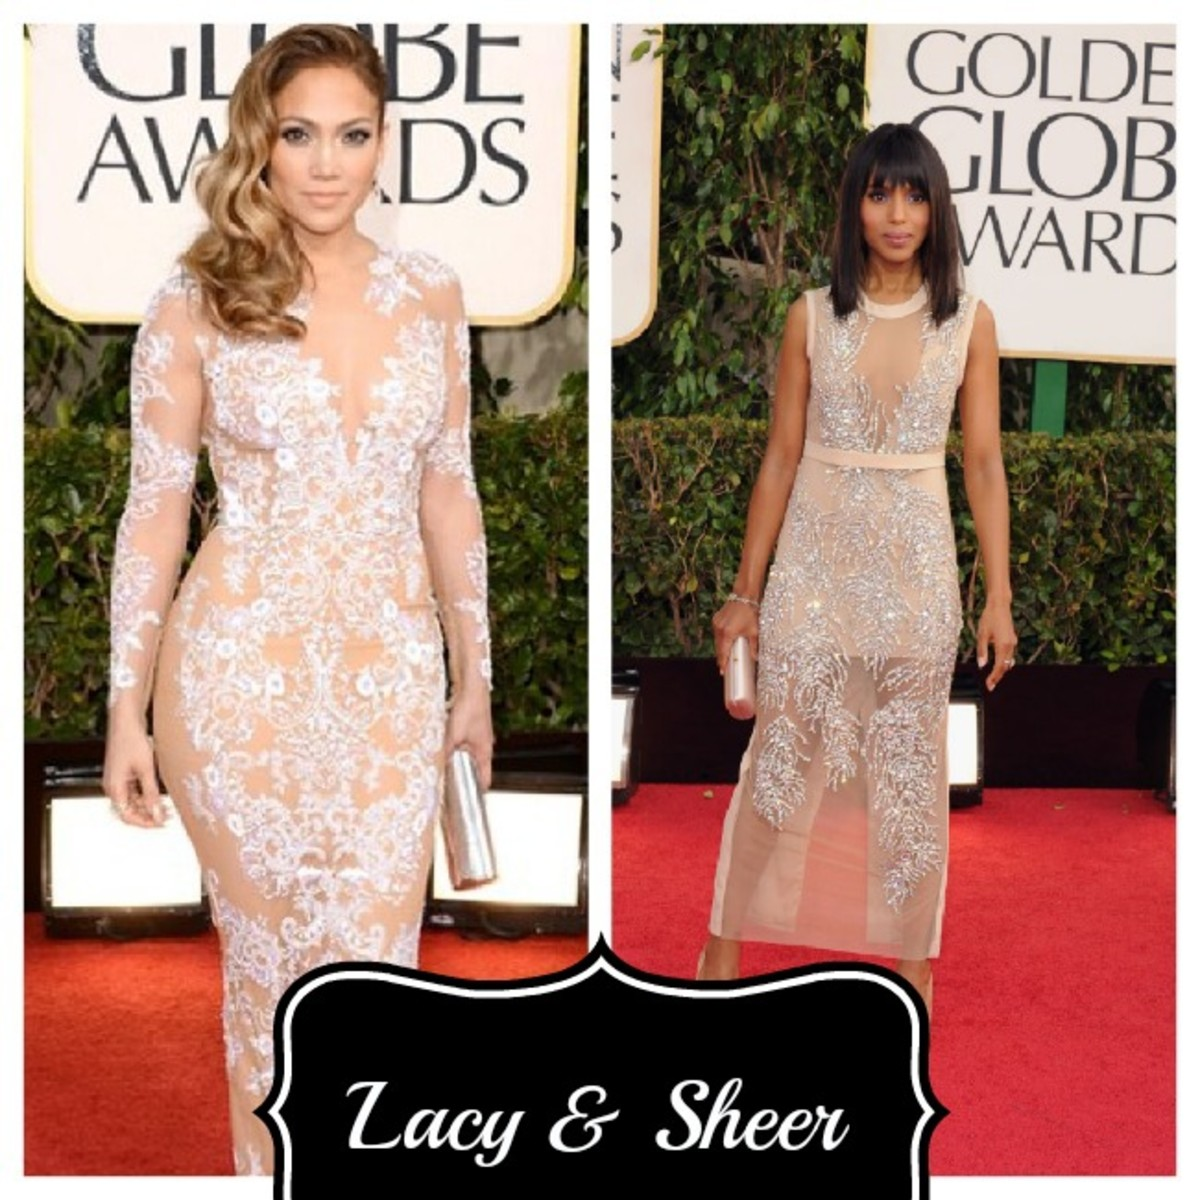 golden globe sheer and lace